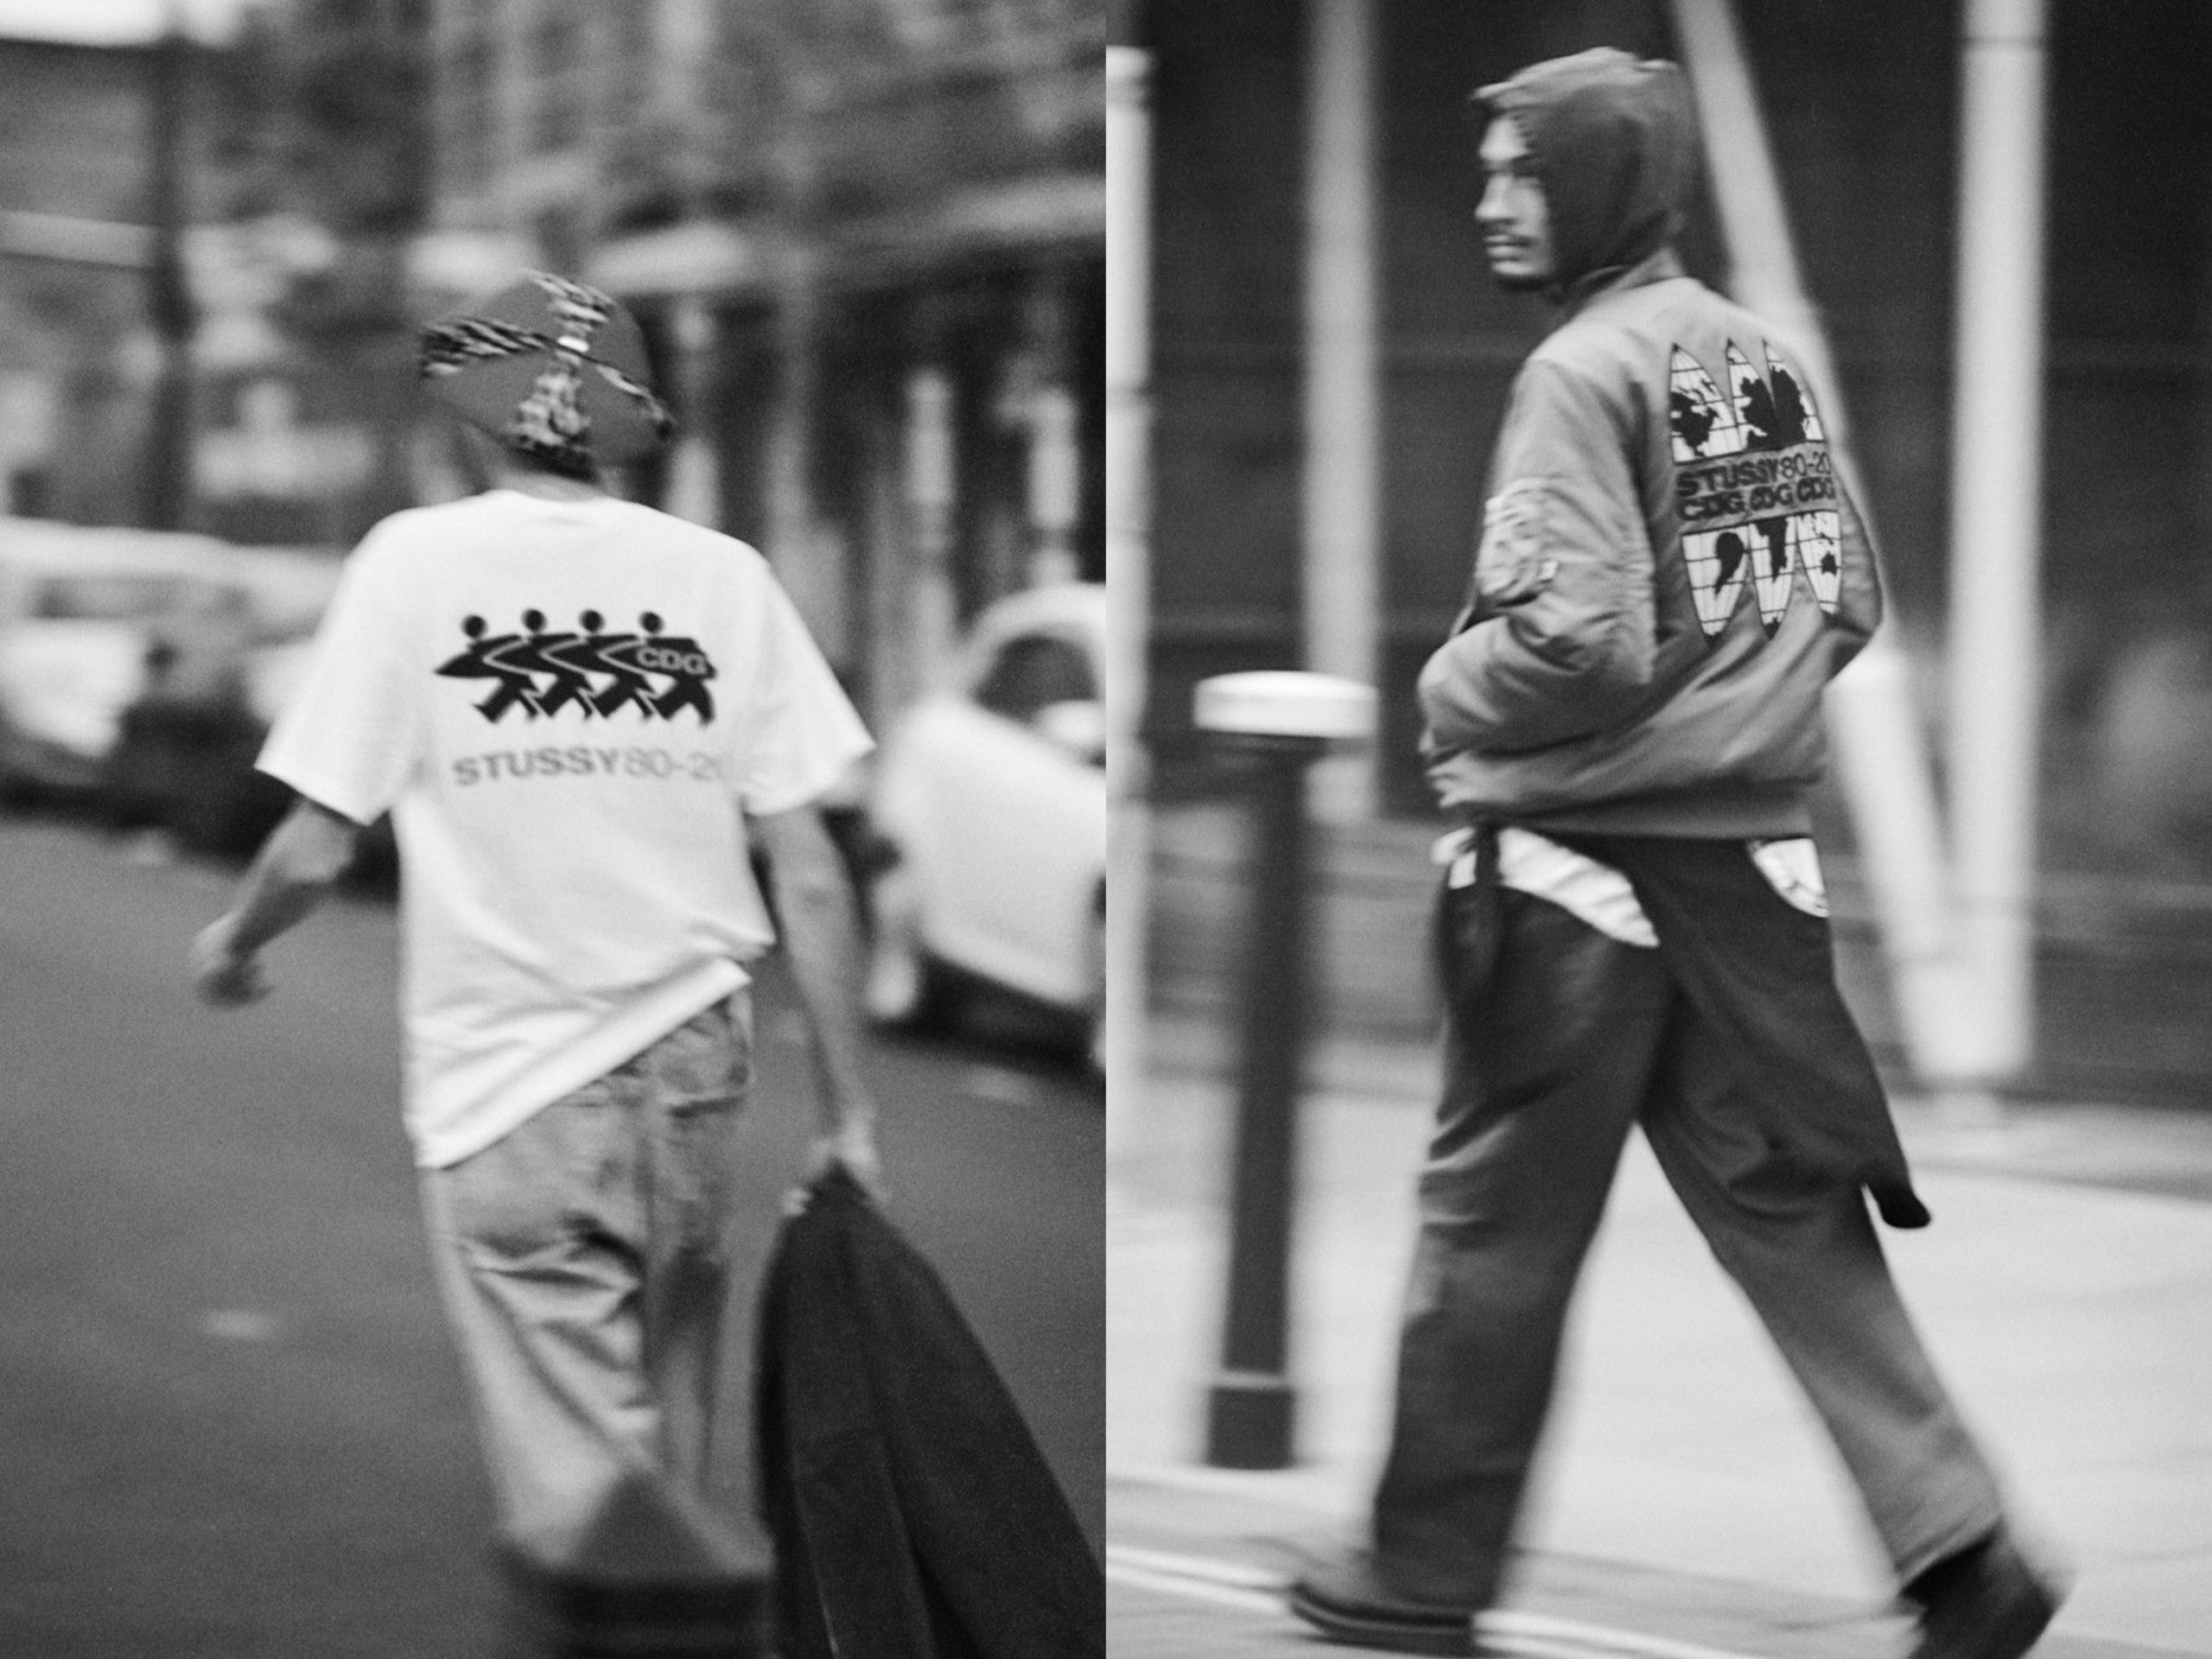 Stüssy Taps CGD for Anniversary Collection